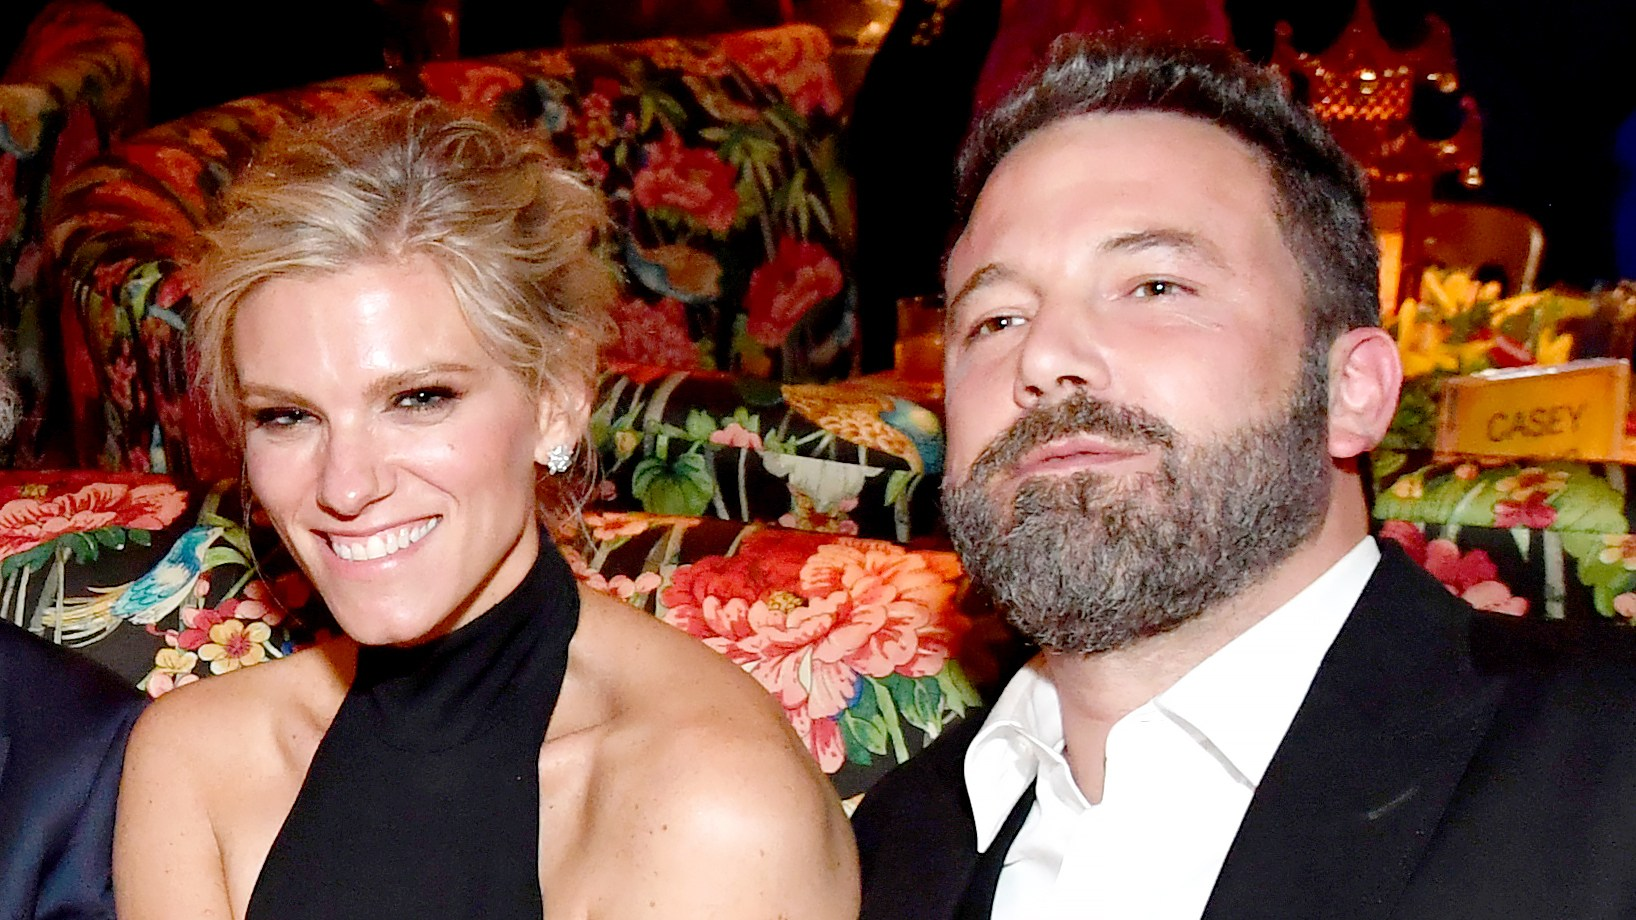 Lindsay Shookus and Ben Affleck attend the HBO's Official 2017 Emmy After Party at The Plaza at the Pacific Design Center on September 17, 2017 in Los Angeles, California.